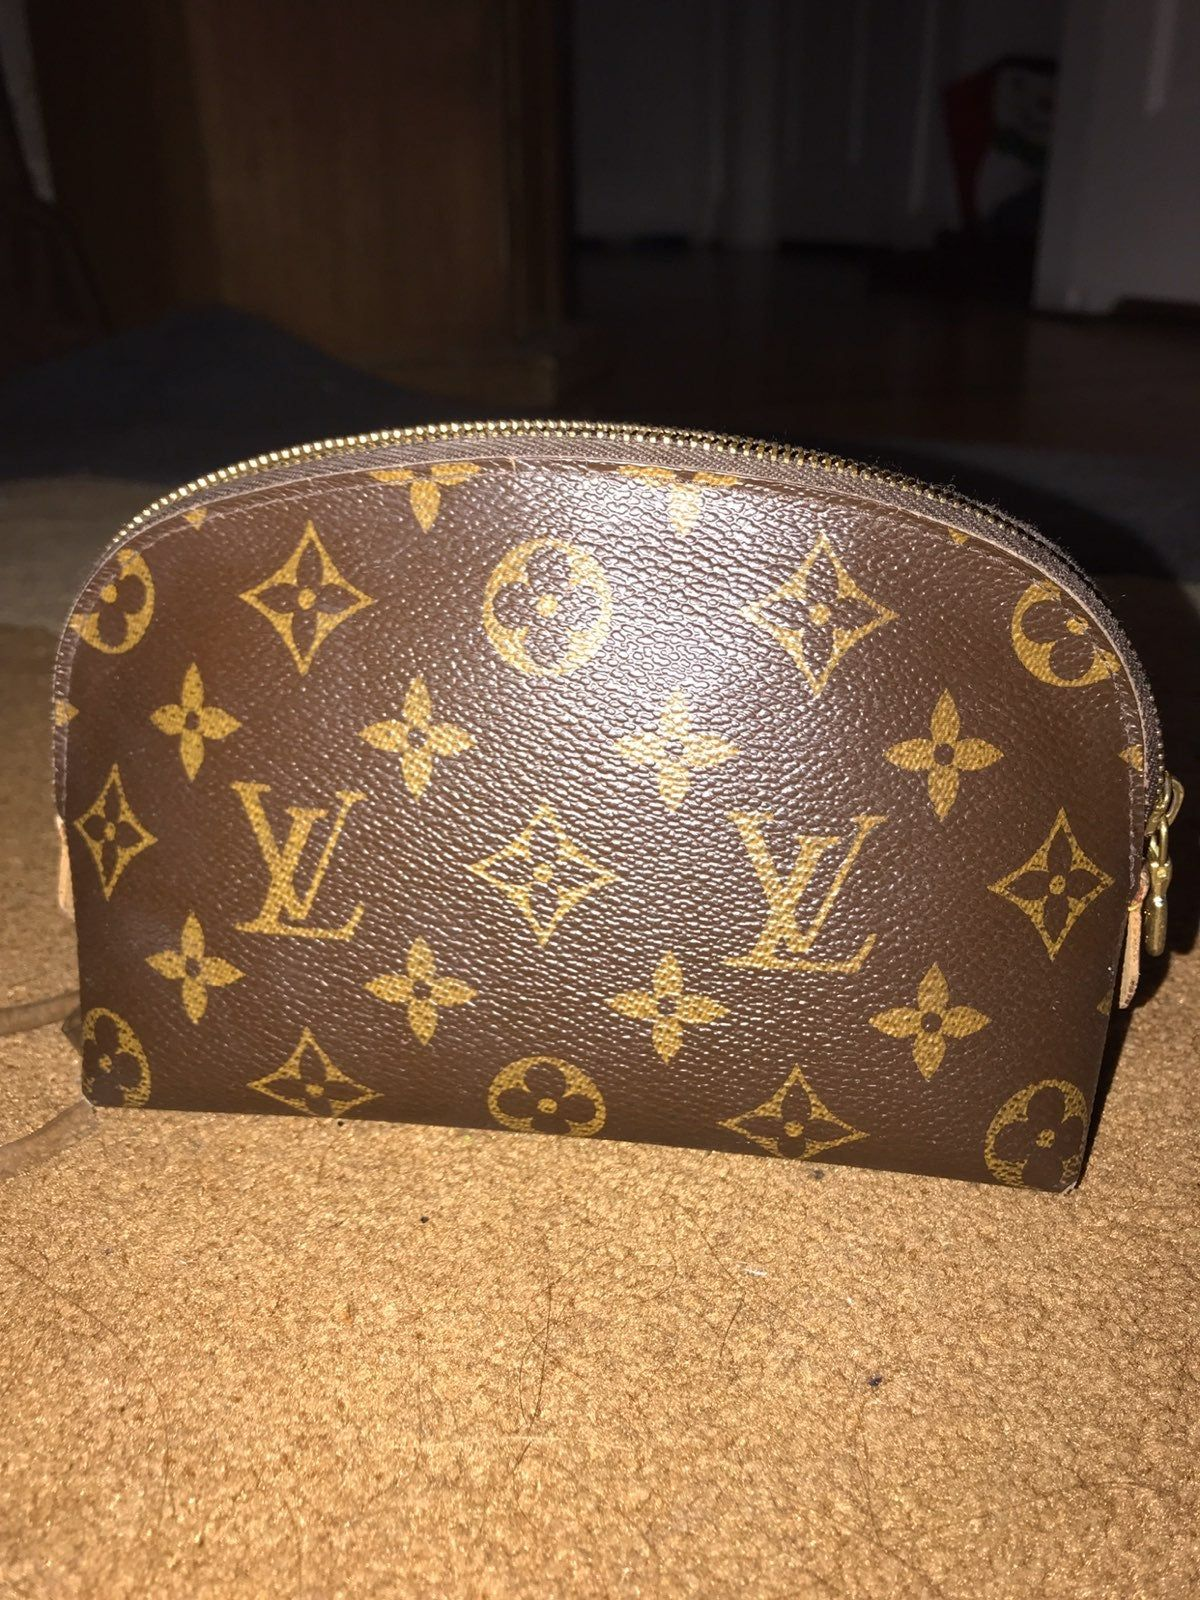 Have Been Used But In Still Good Condition Size Pm In Lv Print Does Have Some Makeup St In 2020 Louis Vuitton Cosmetic Pouch Louis Vuitton Cosmetic Bag Louis Vuitton